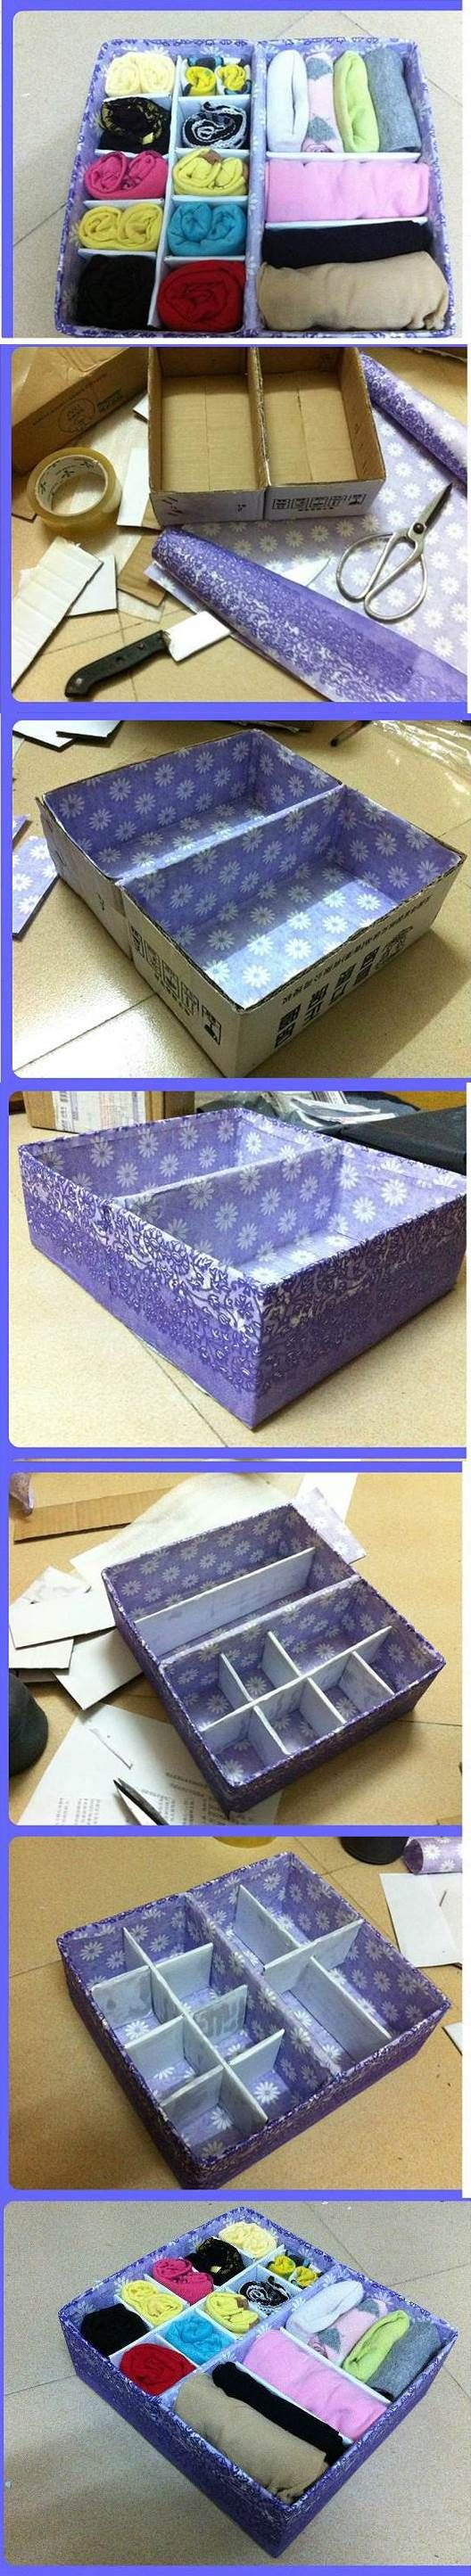 DIY Cardboard Underwear Storage Box | iCreativeIdeas